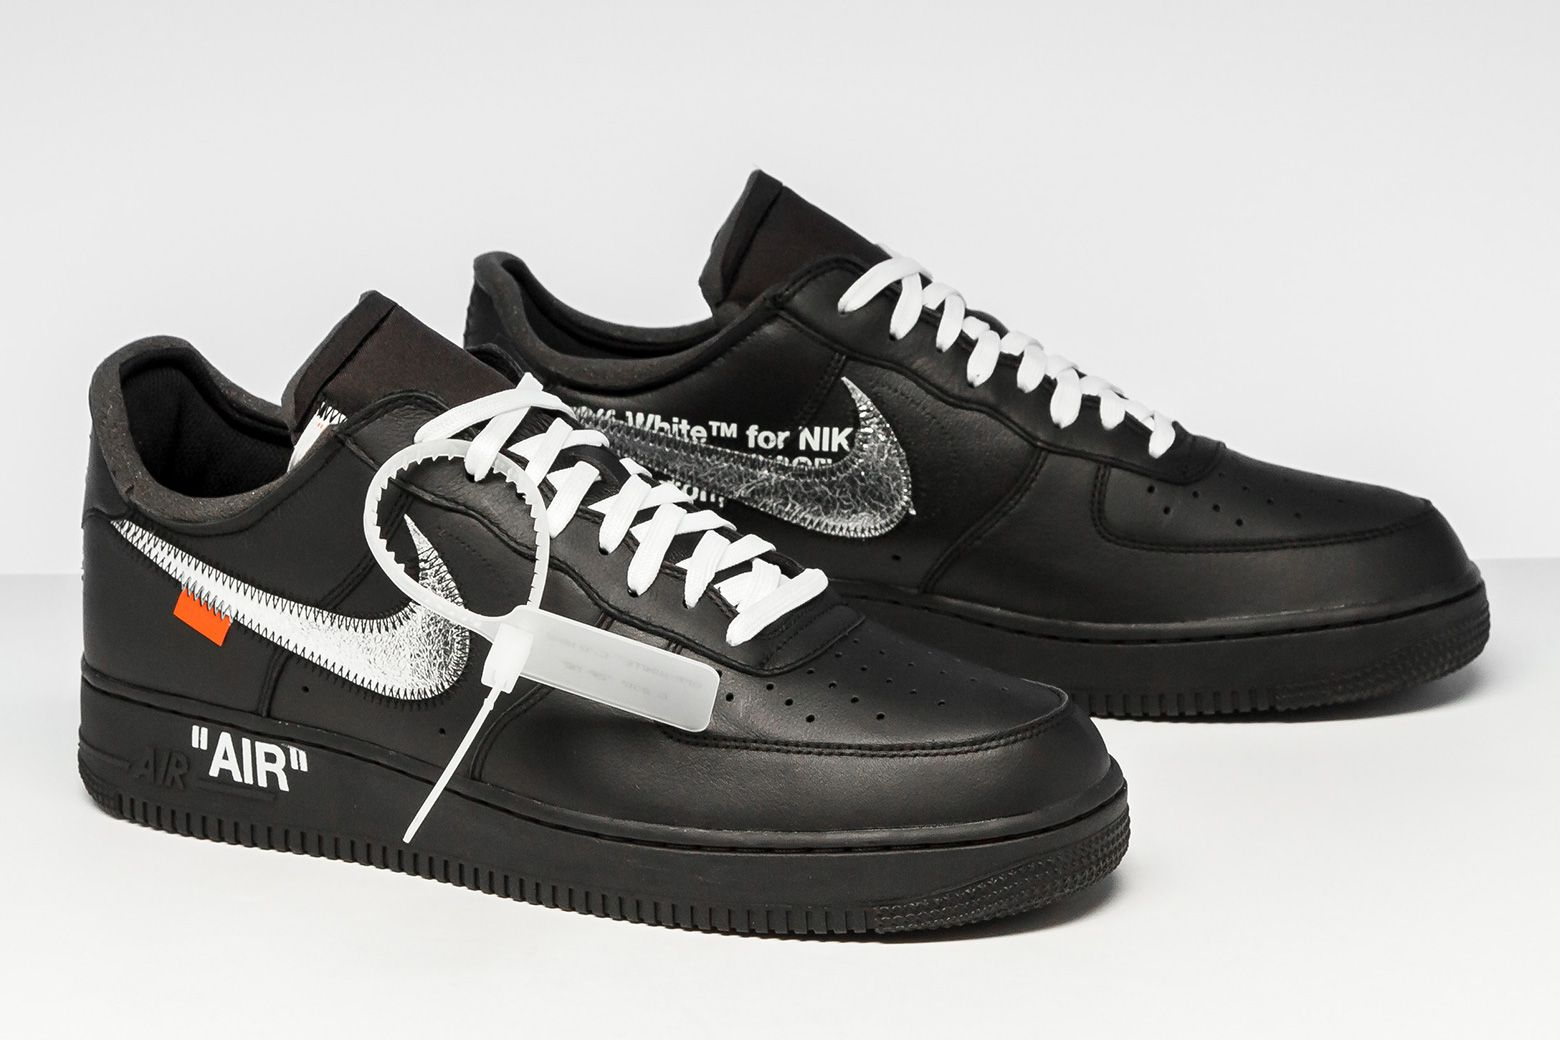 Nike Air Force 1 07 Virgil Off White Moma Av5210 001 In 2020